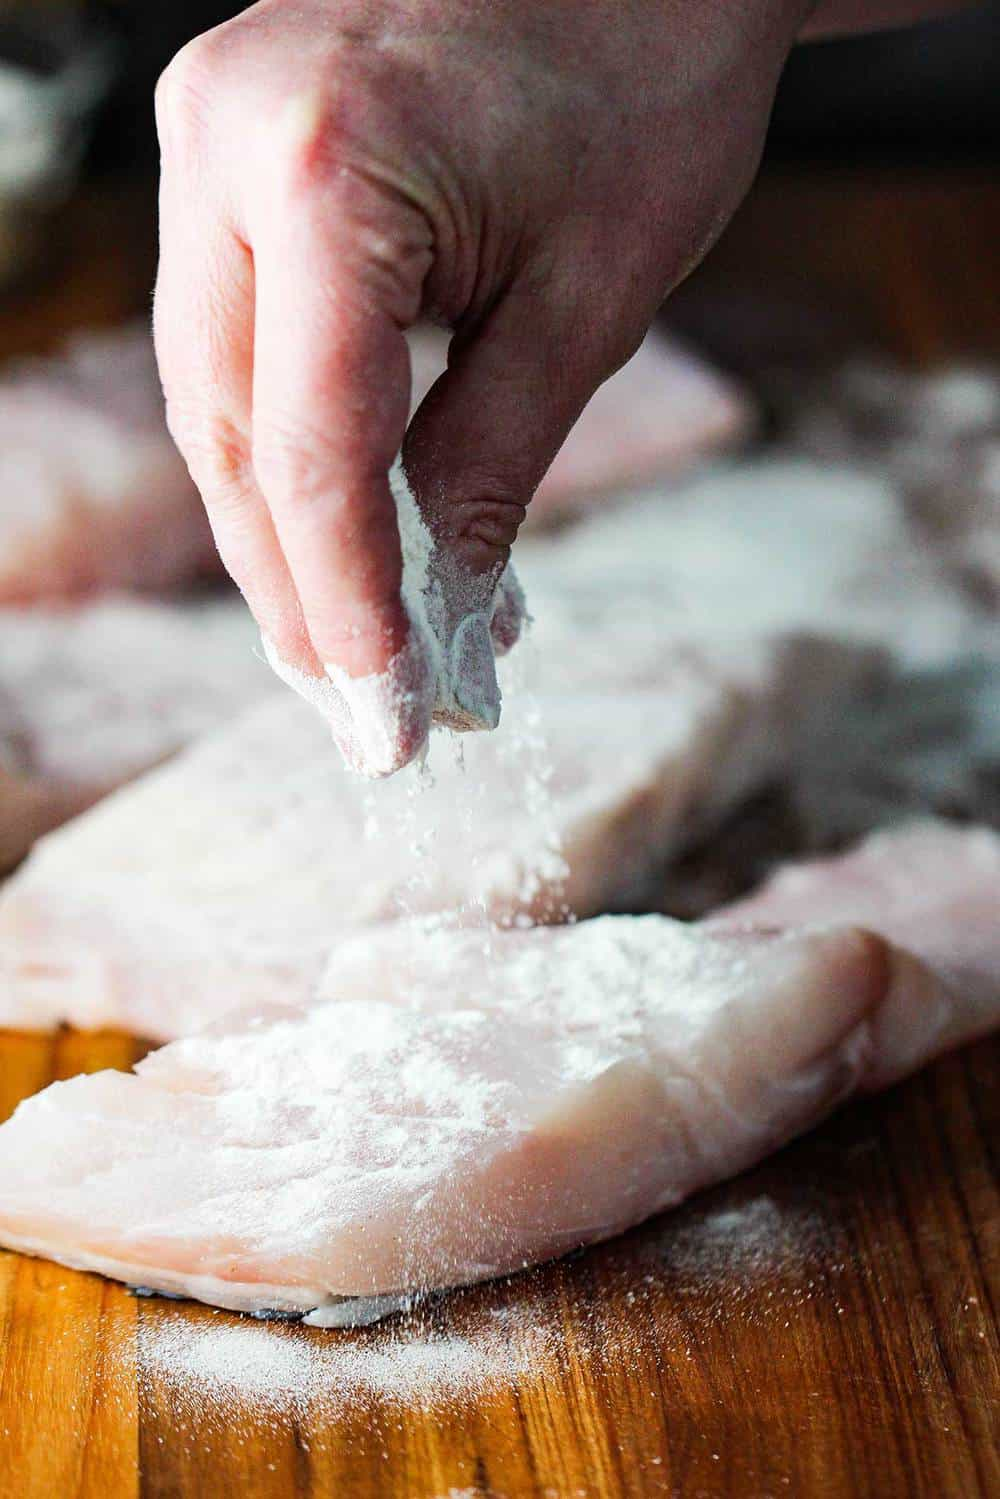 Fingers dusting flour over fresh wild striped bass fillets